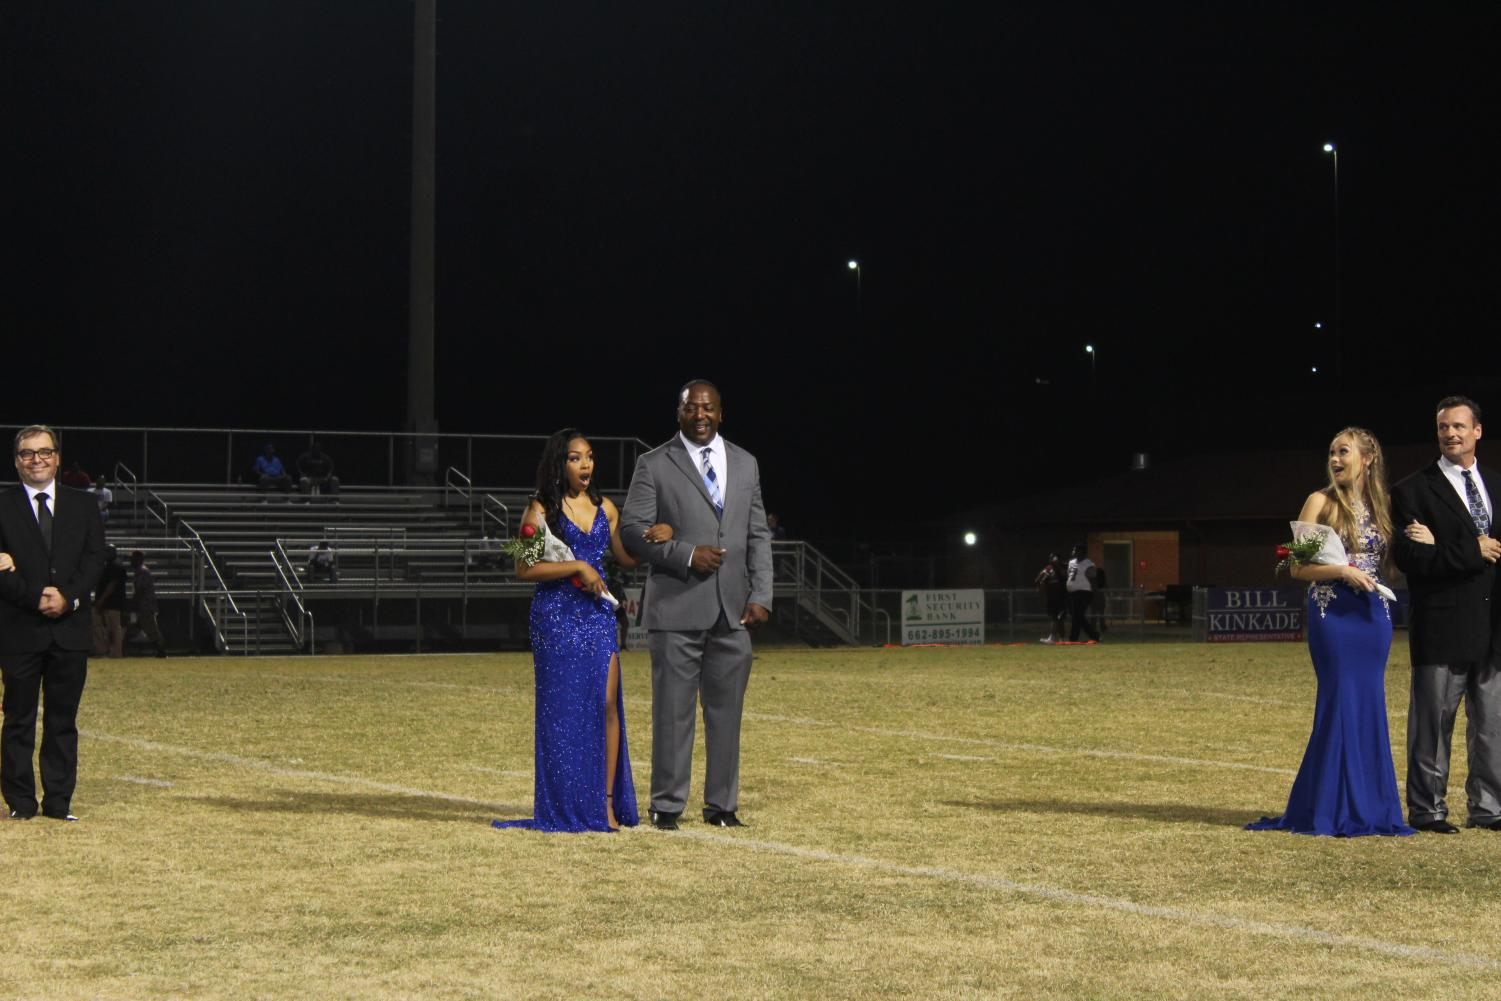 Kennedi Evans reacts to being named Homecoming Queen during halftime of the Sept. 13 game against Douglass High School.